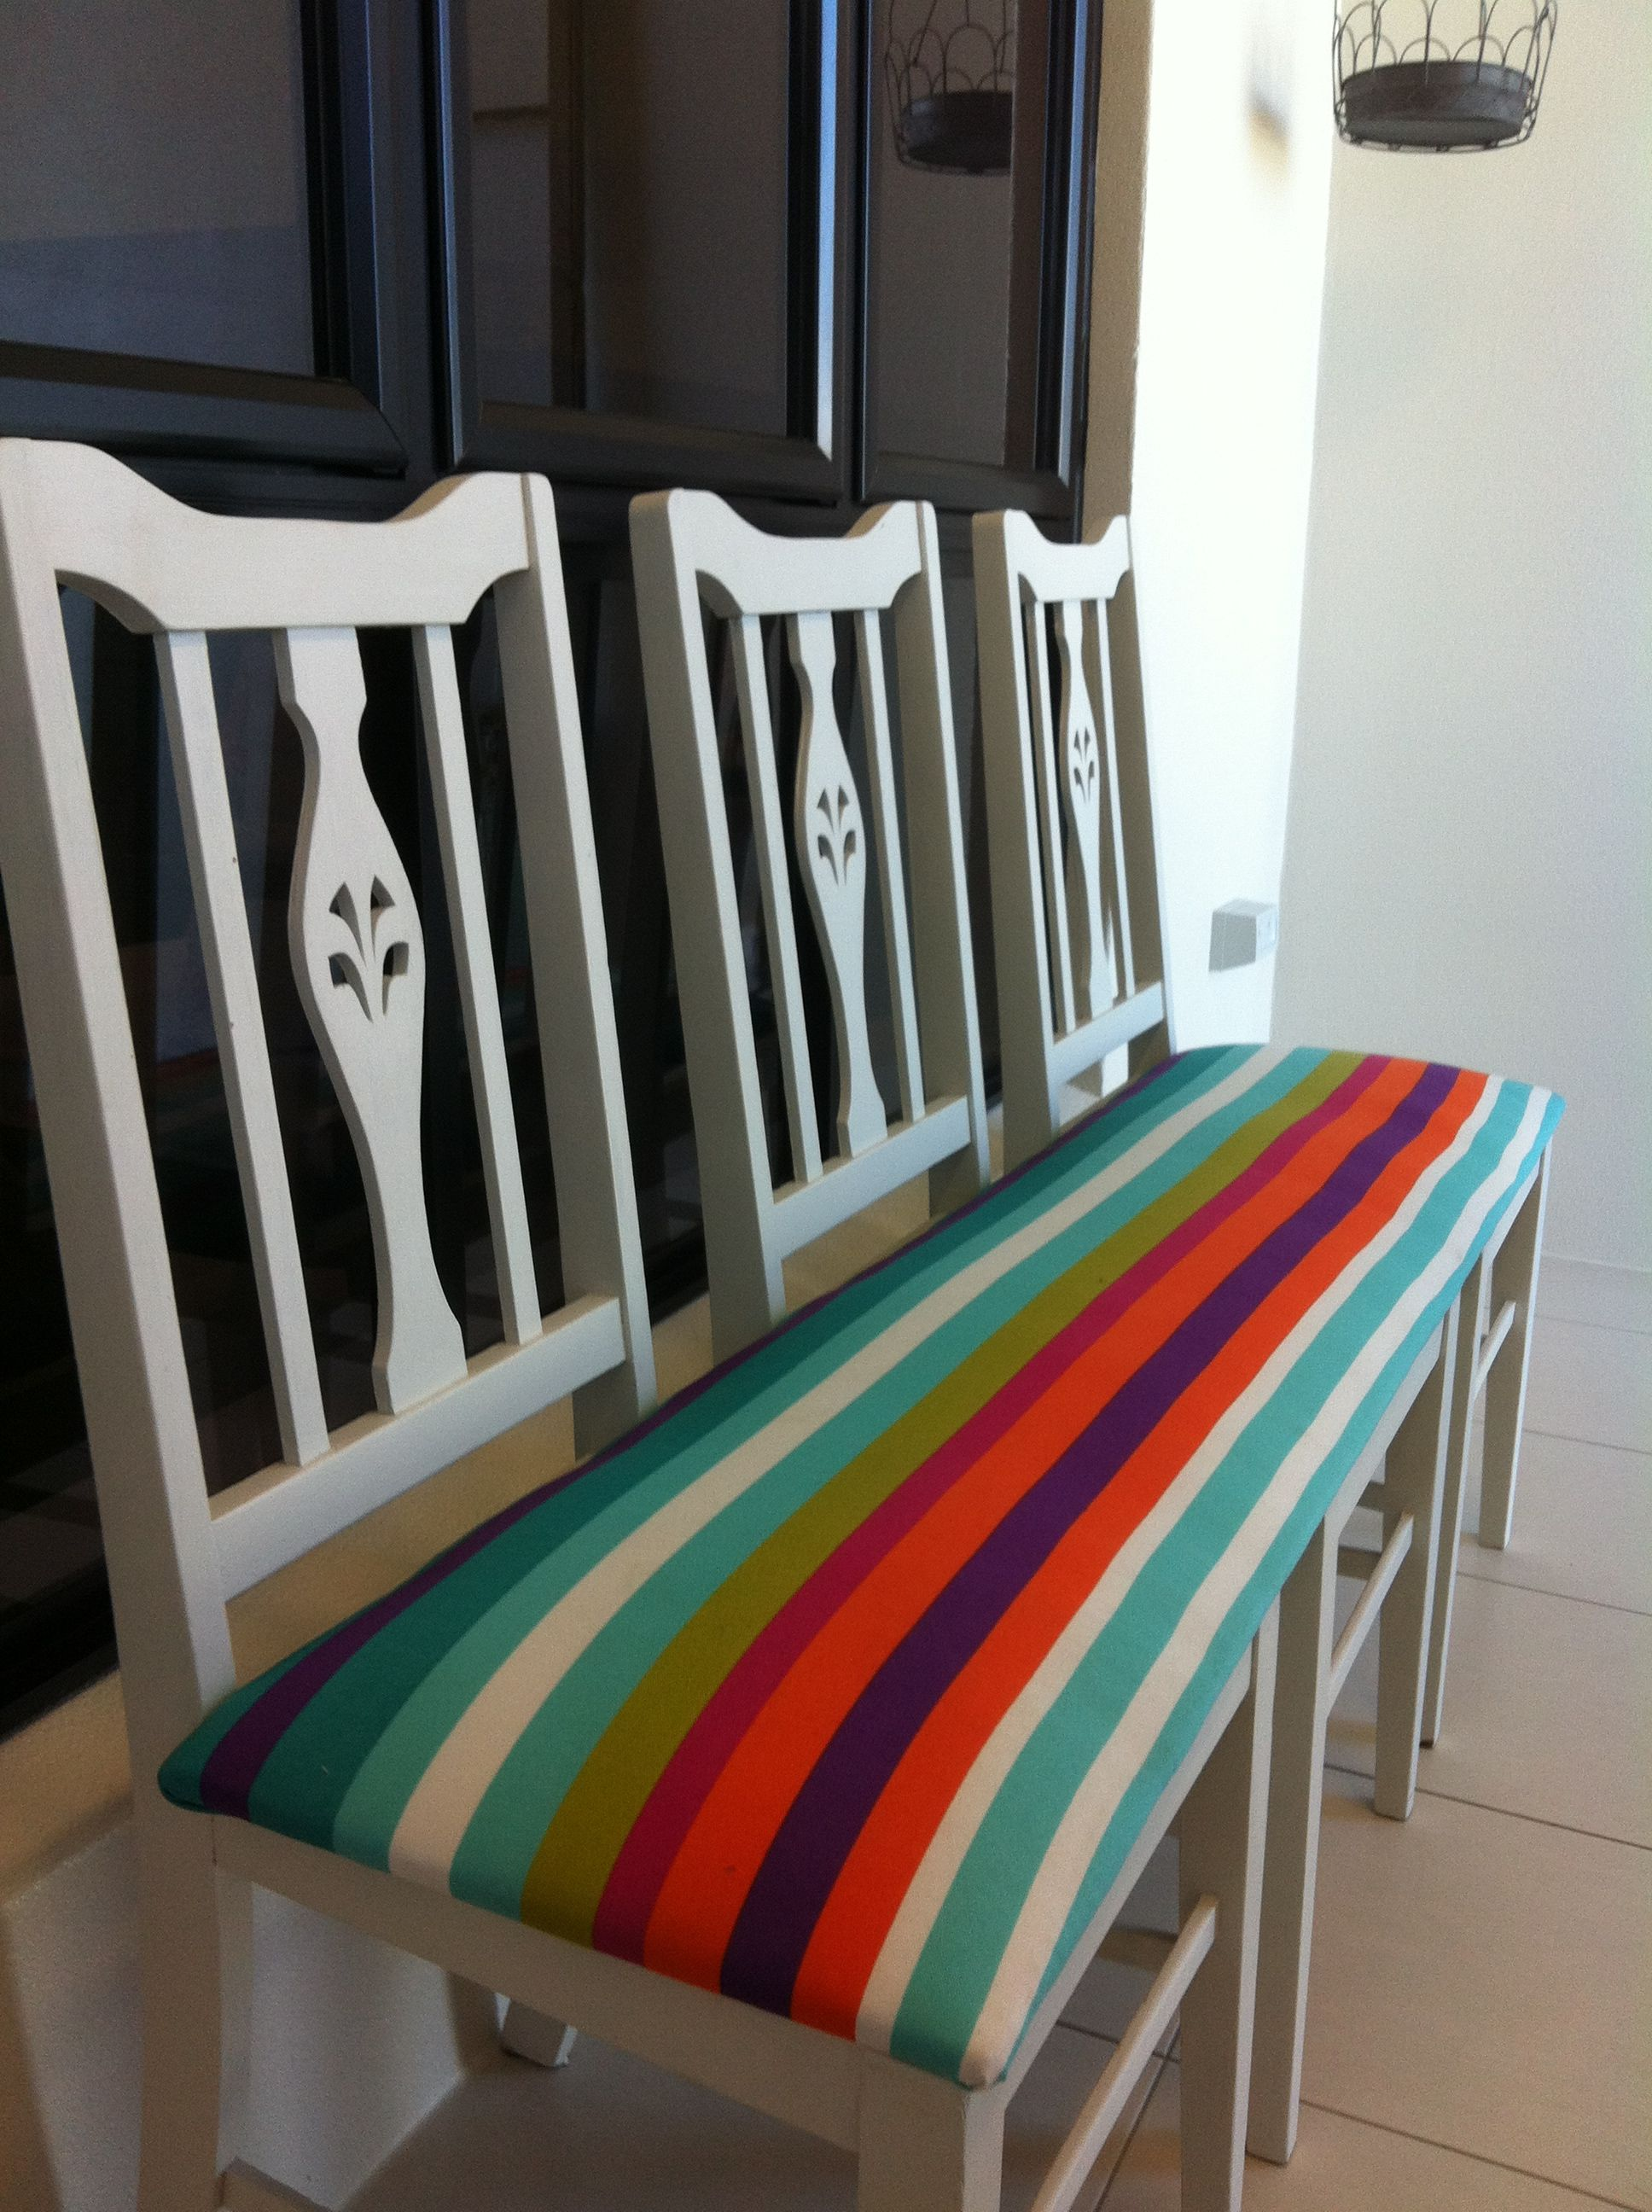 3 Wooden Chairs 1 Board Bright Coloured Fabric